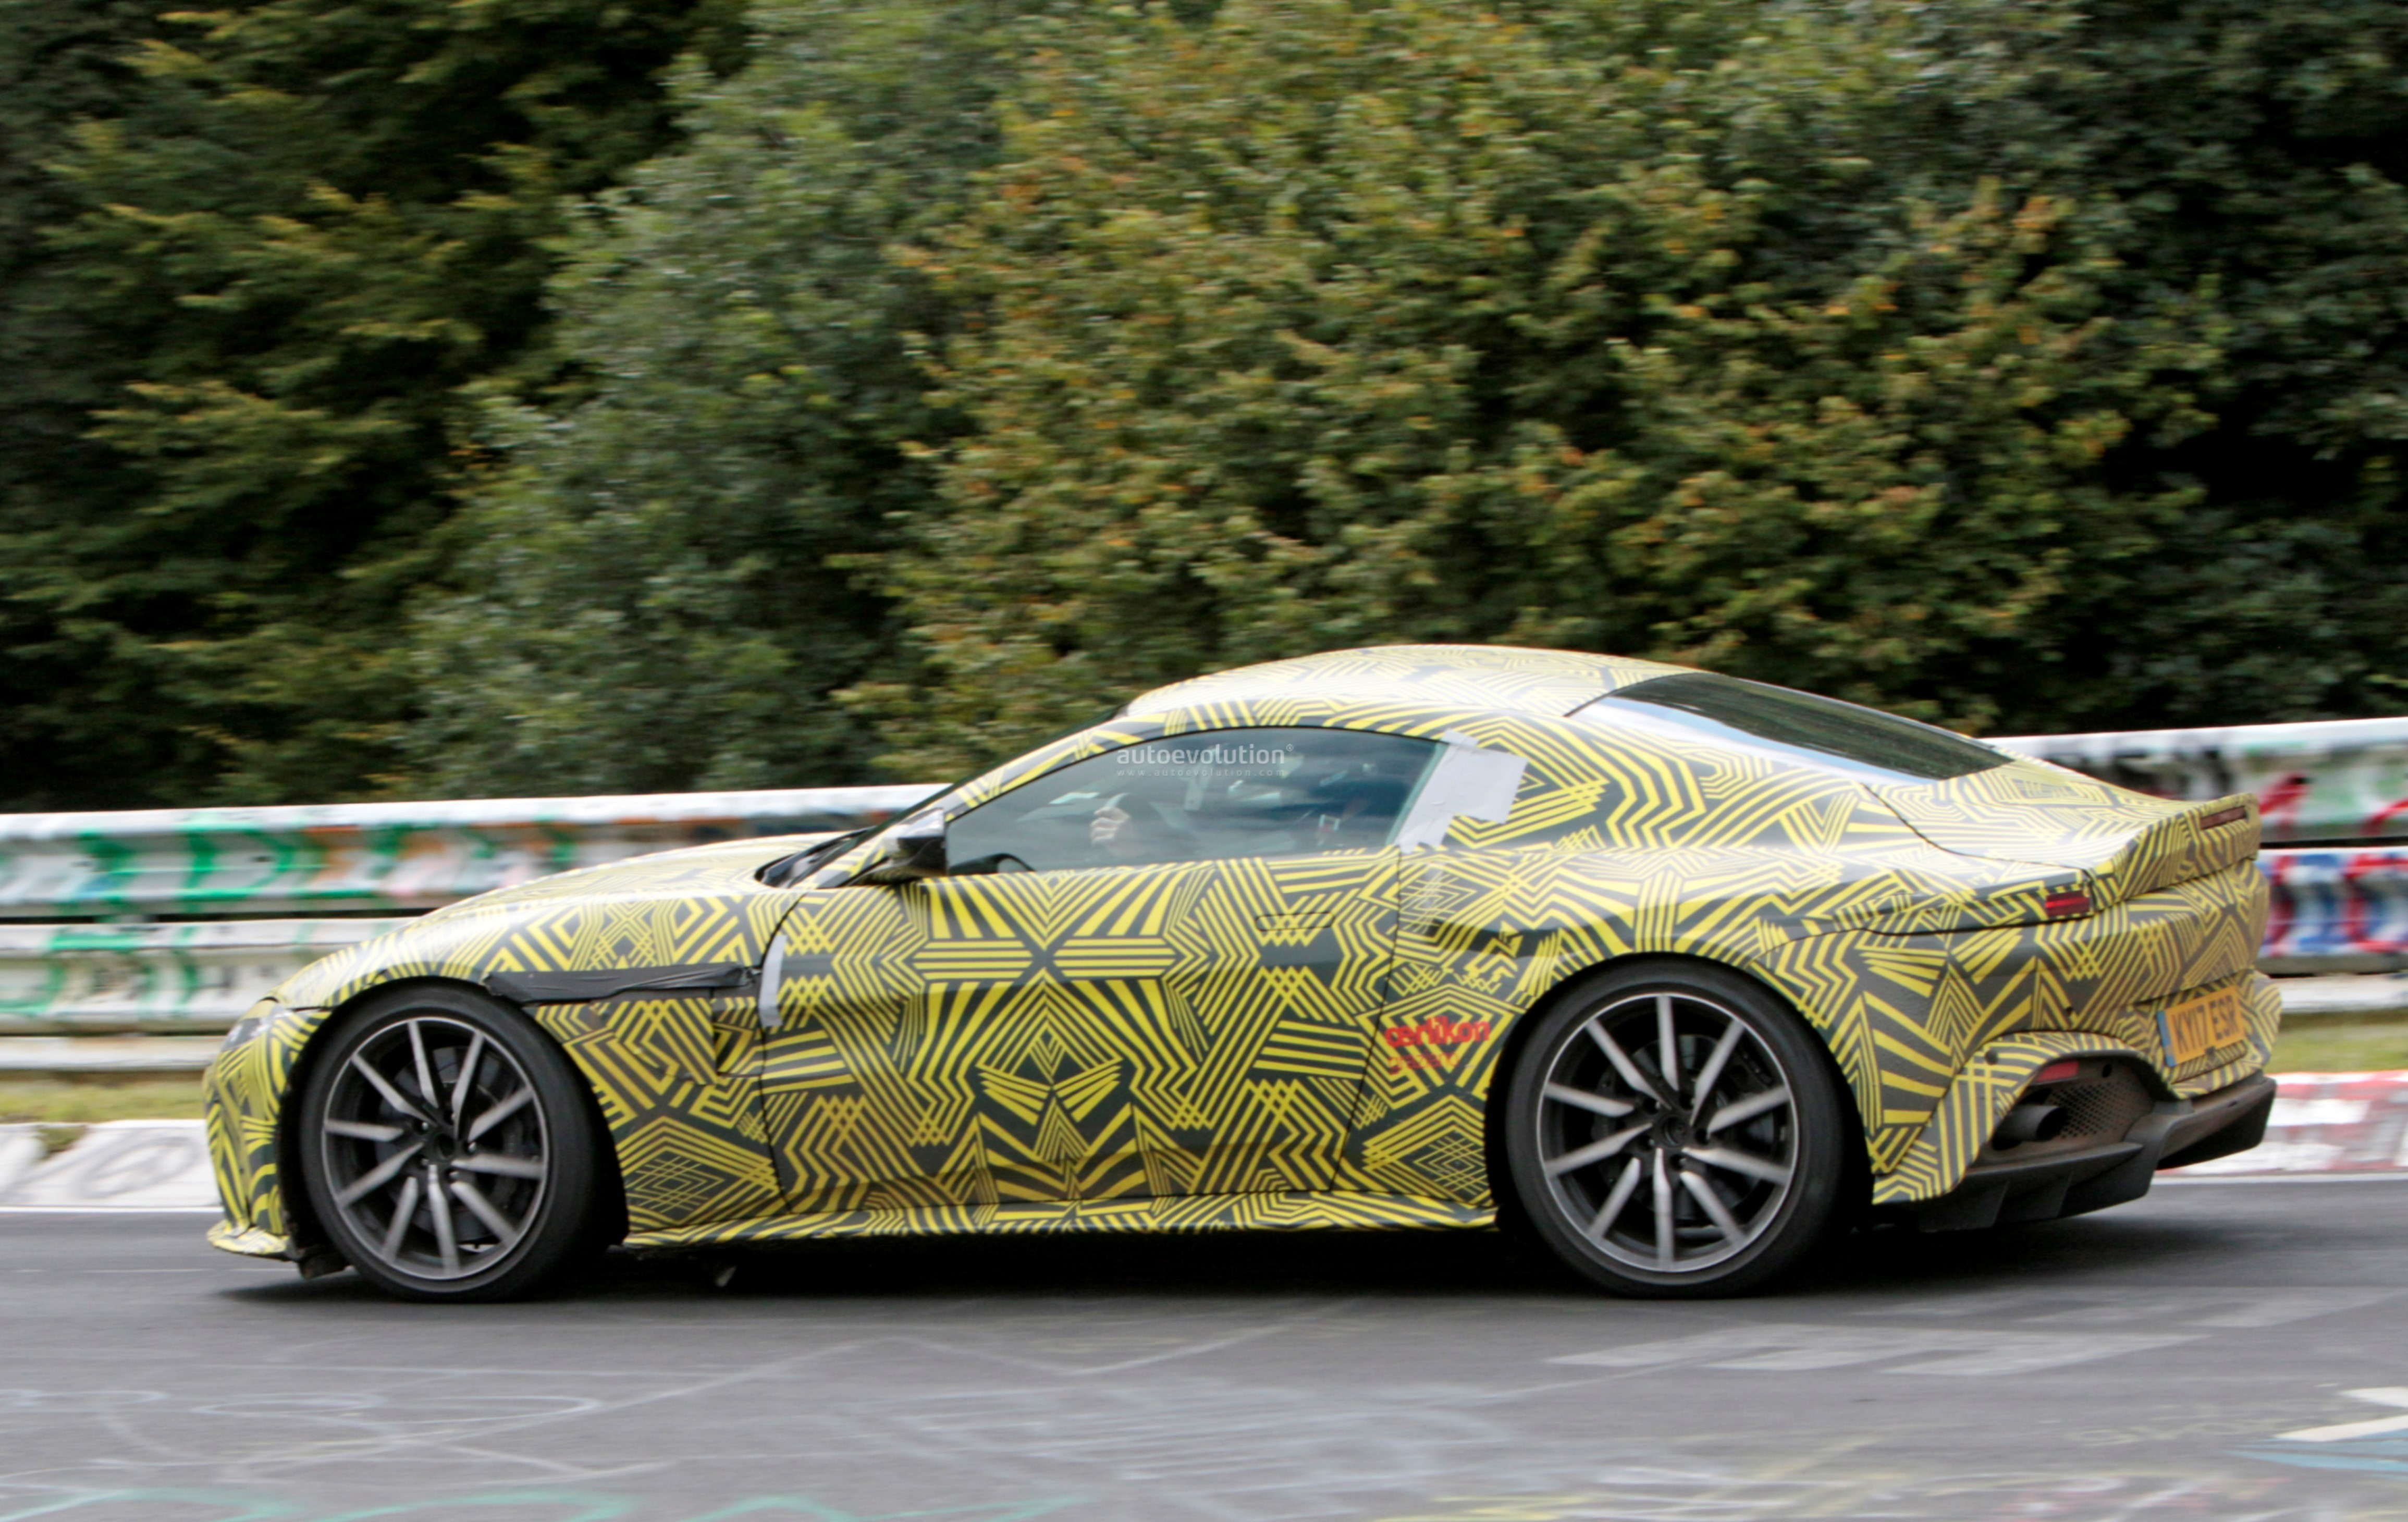 2019 aston martin v8 vantage driven hard on the nurburgring in newest spy photos autoevolution. Black Bedroom Furniture Sets. Home Design Ideas